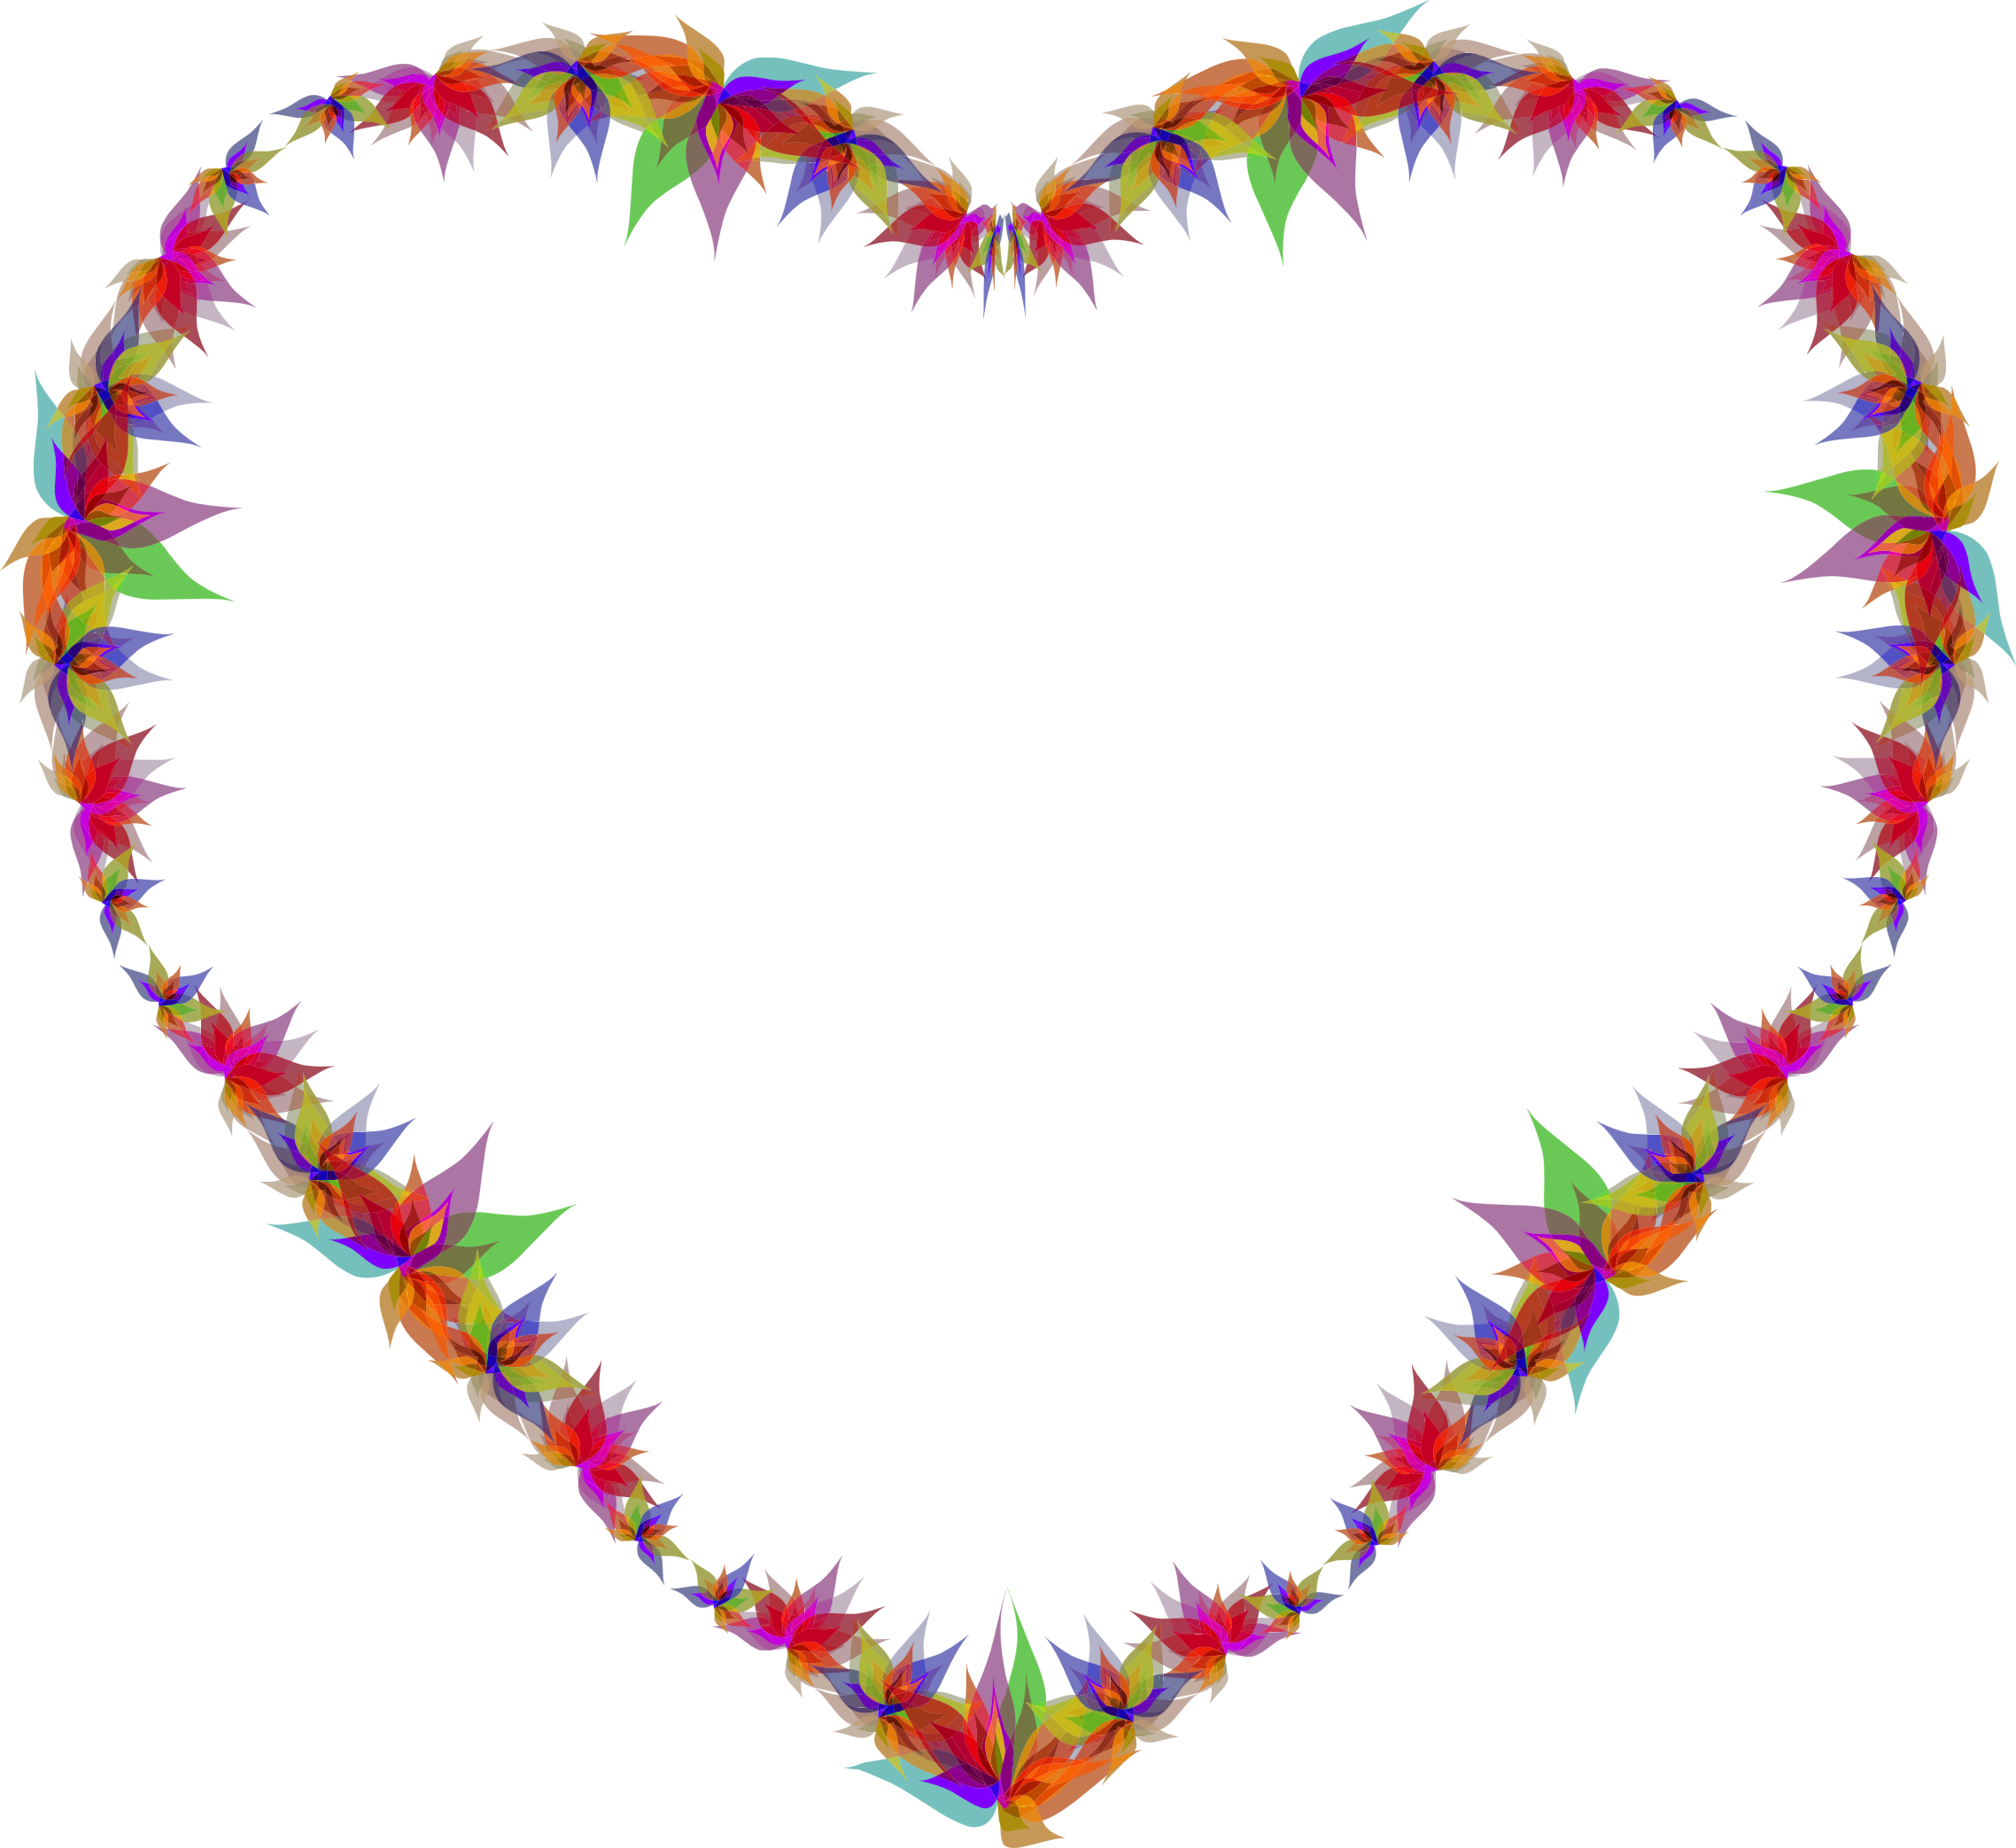 Flower heart clipart picture black and white library Clipart - Abstract Flowers Heart picture black and white library